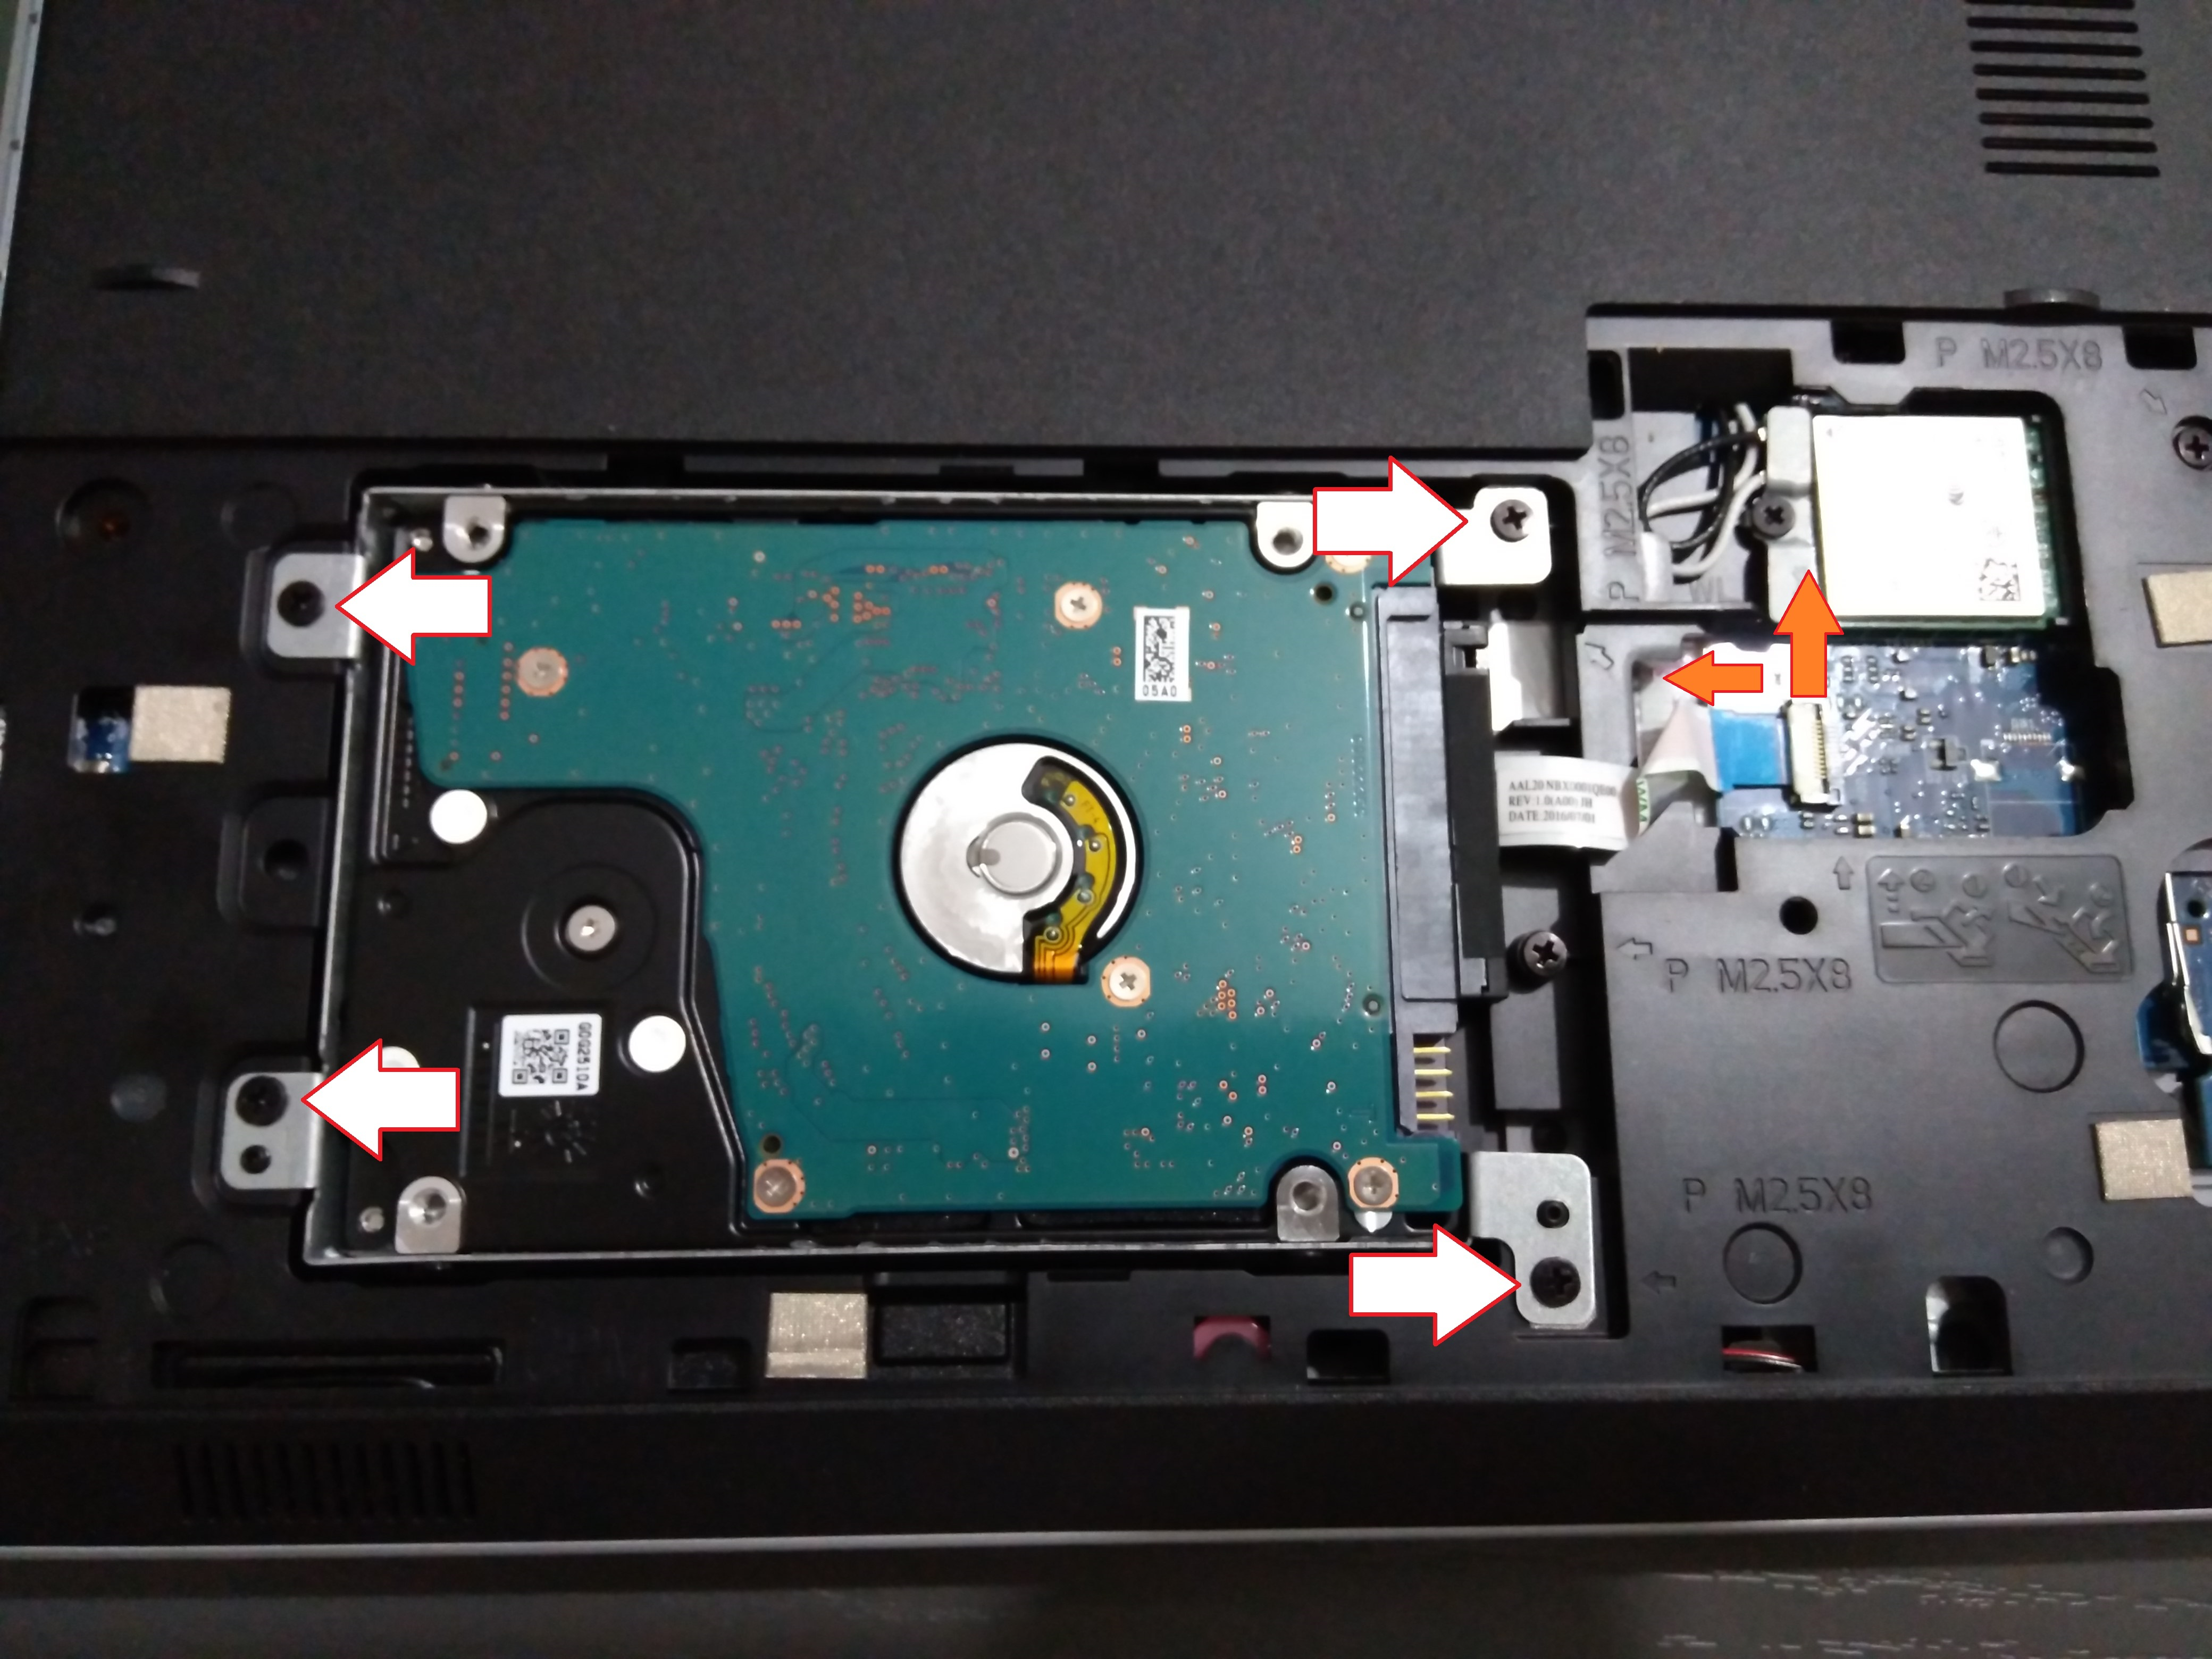 HW - Install SSD in laptop and replace DVD - SomoIT net